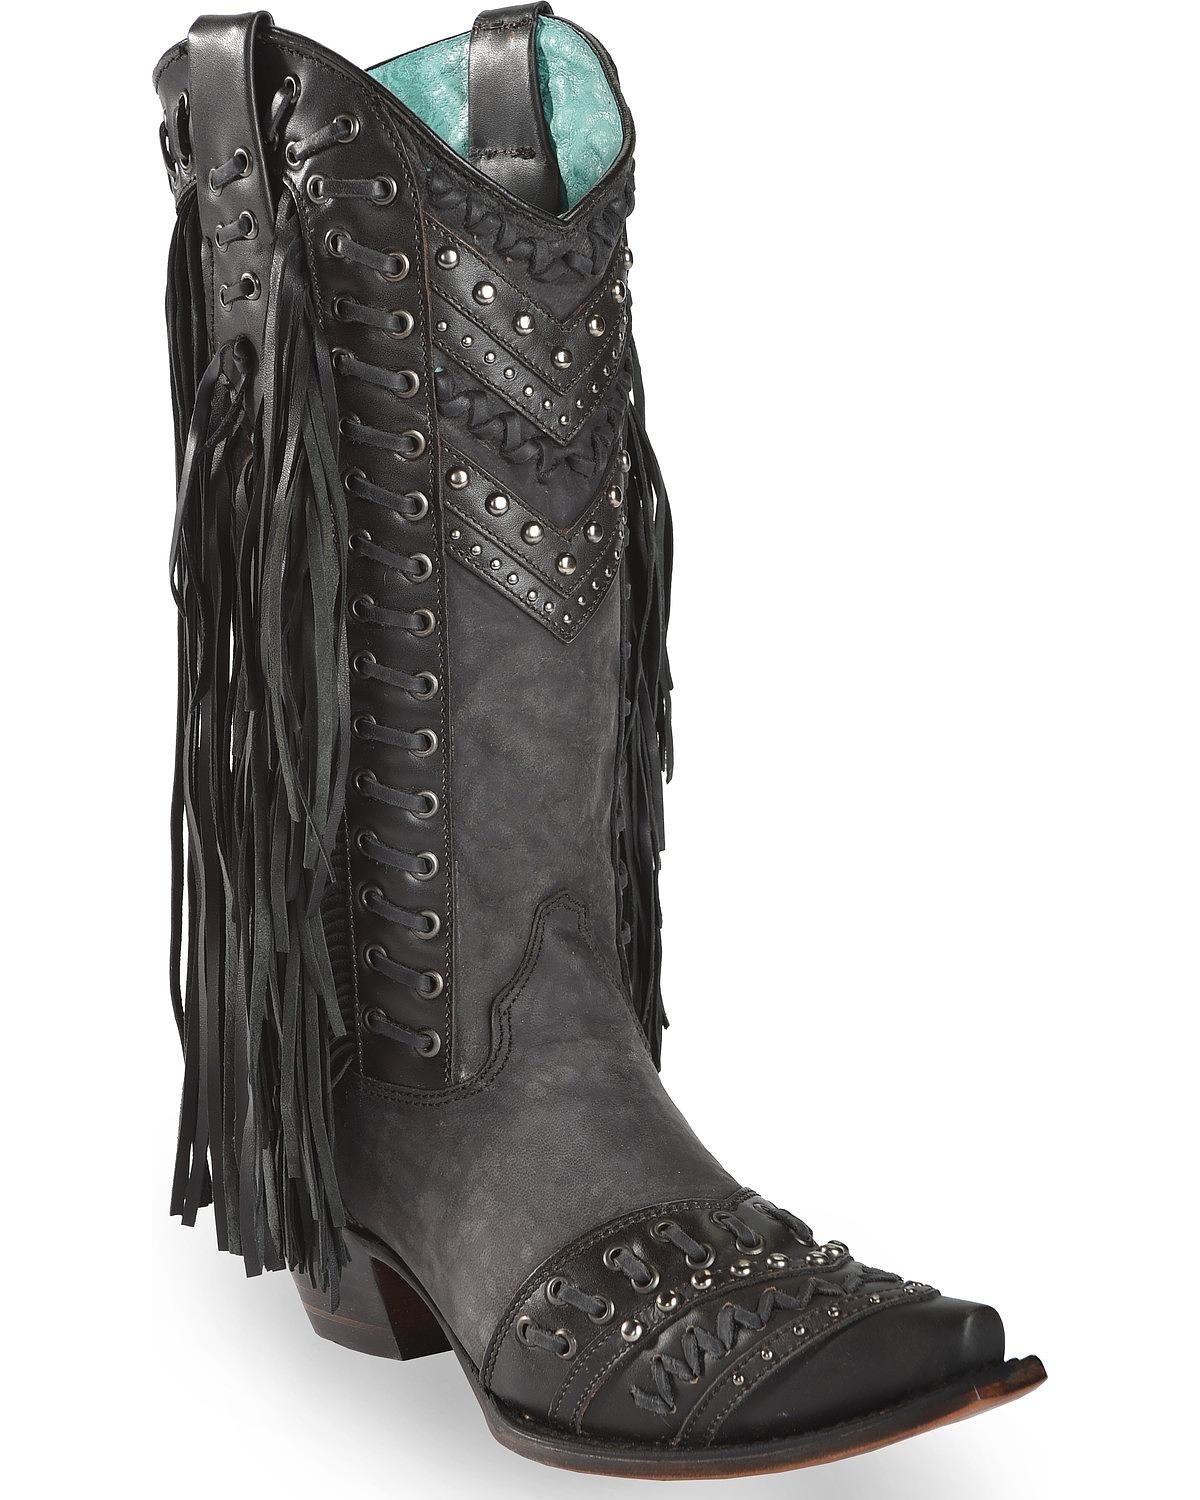 CORRAL Women's Studded Snip Side Fringe Cowgirl Boot Snip Studded Toe - C3006 B01K7K2OJM 11 B(M) US|Black 857afd